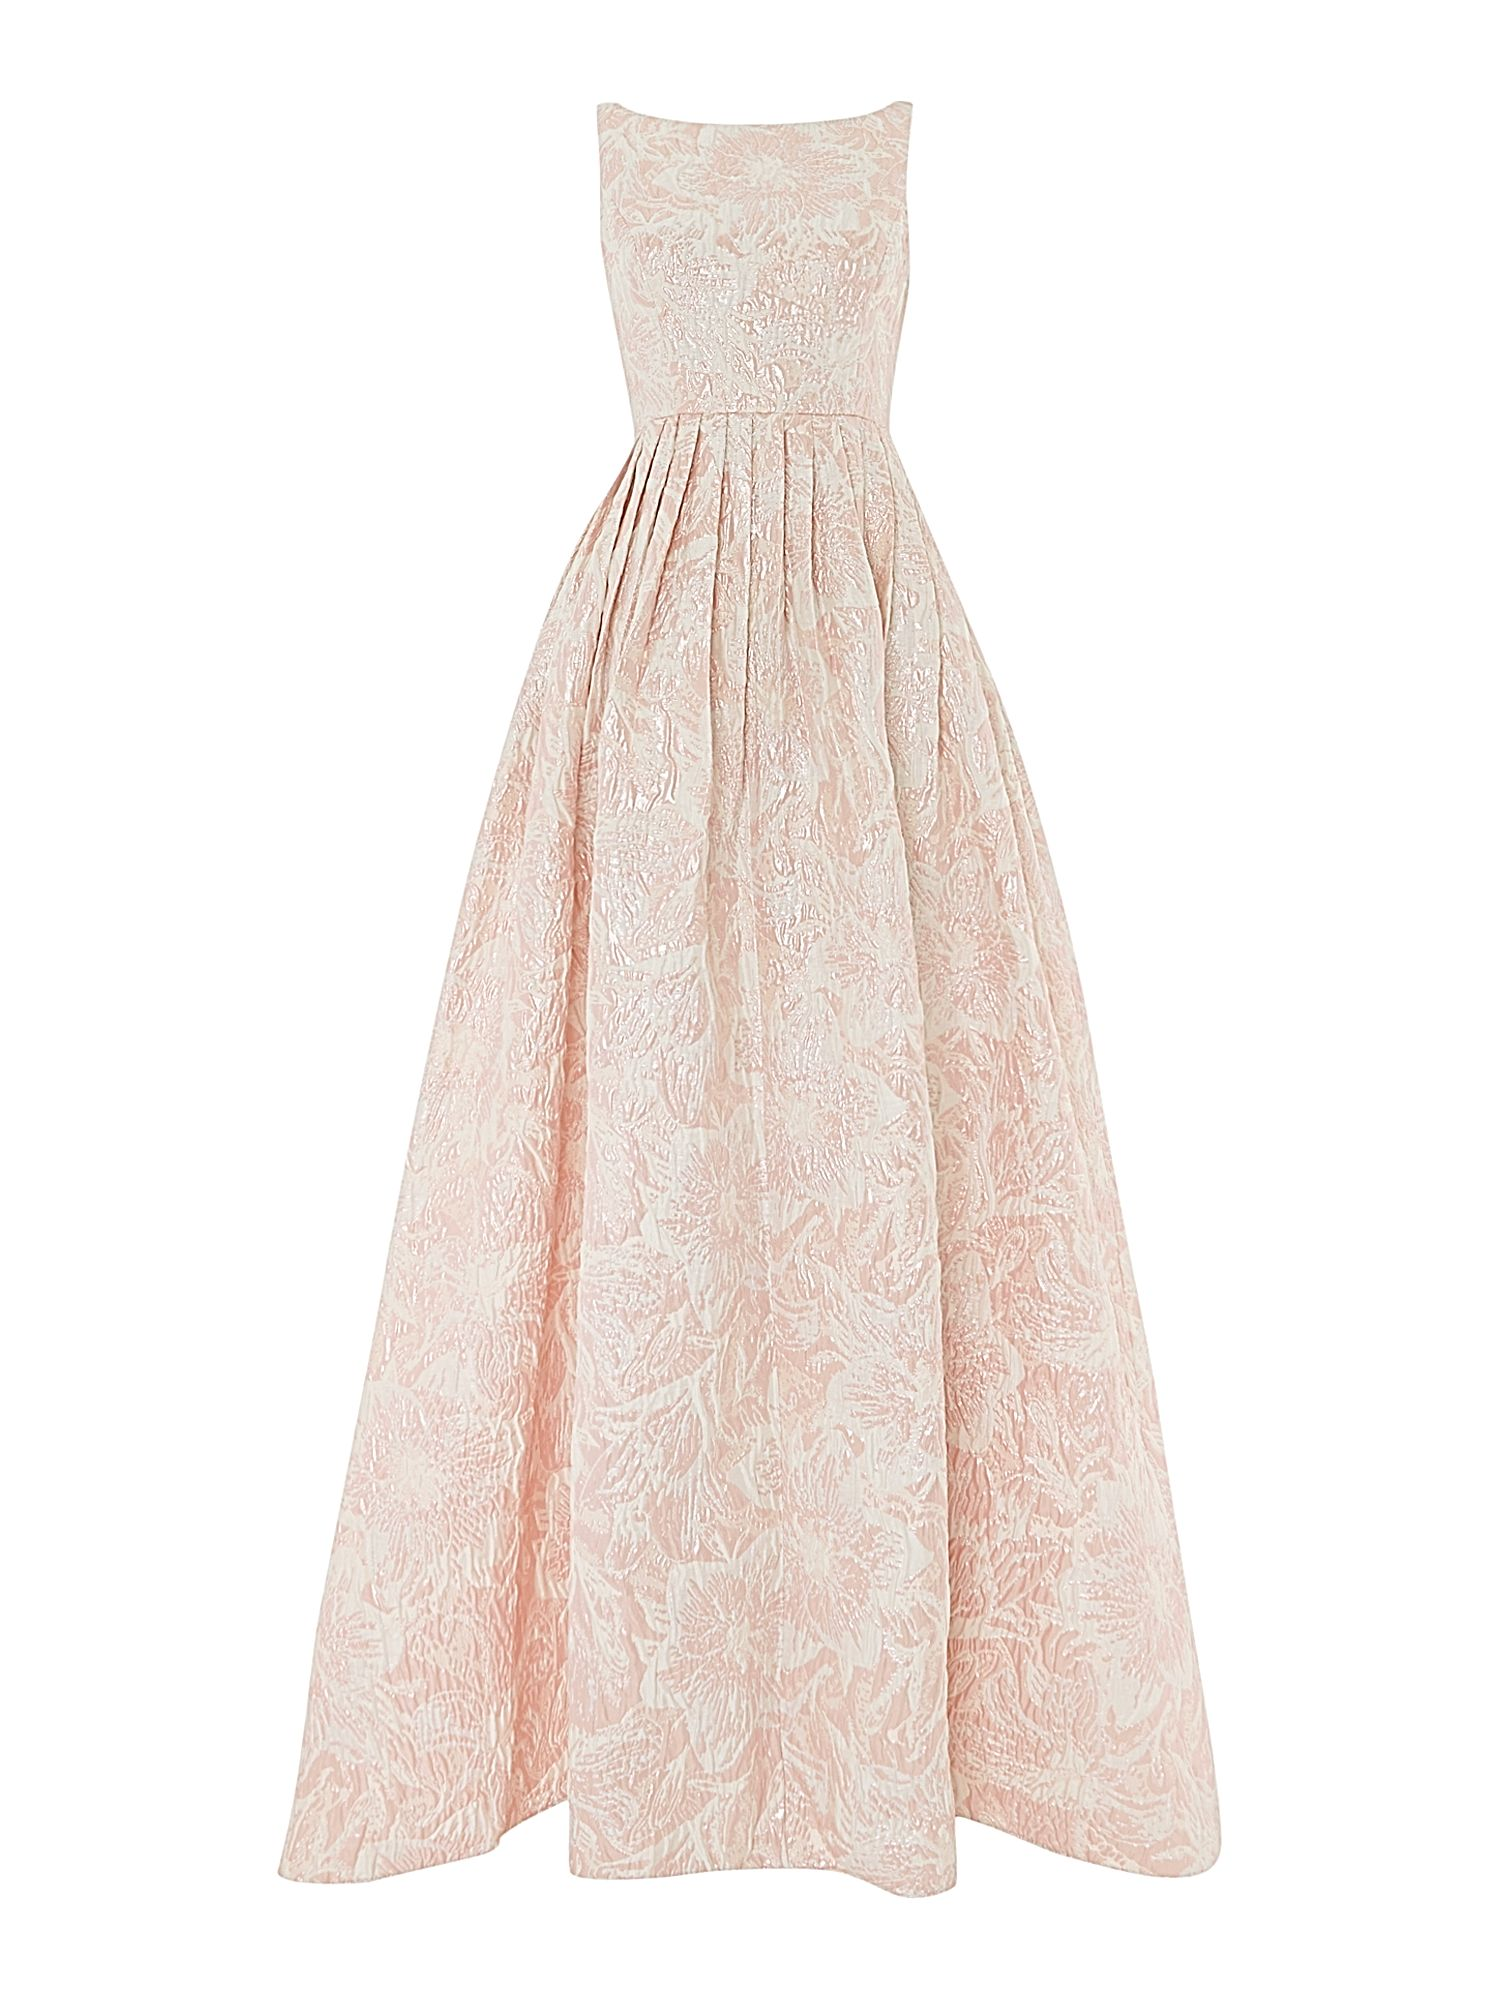 Adrianna Papell Floral Fit and Flare Jacquard Maxi Dress Pink £160.00 AT vintagedancer.com